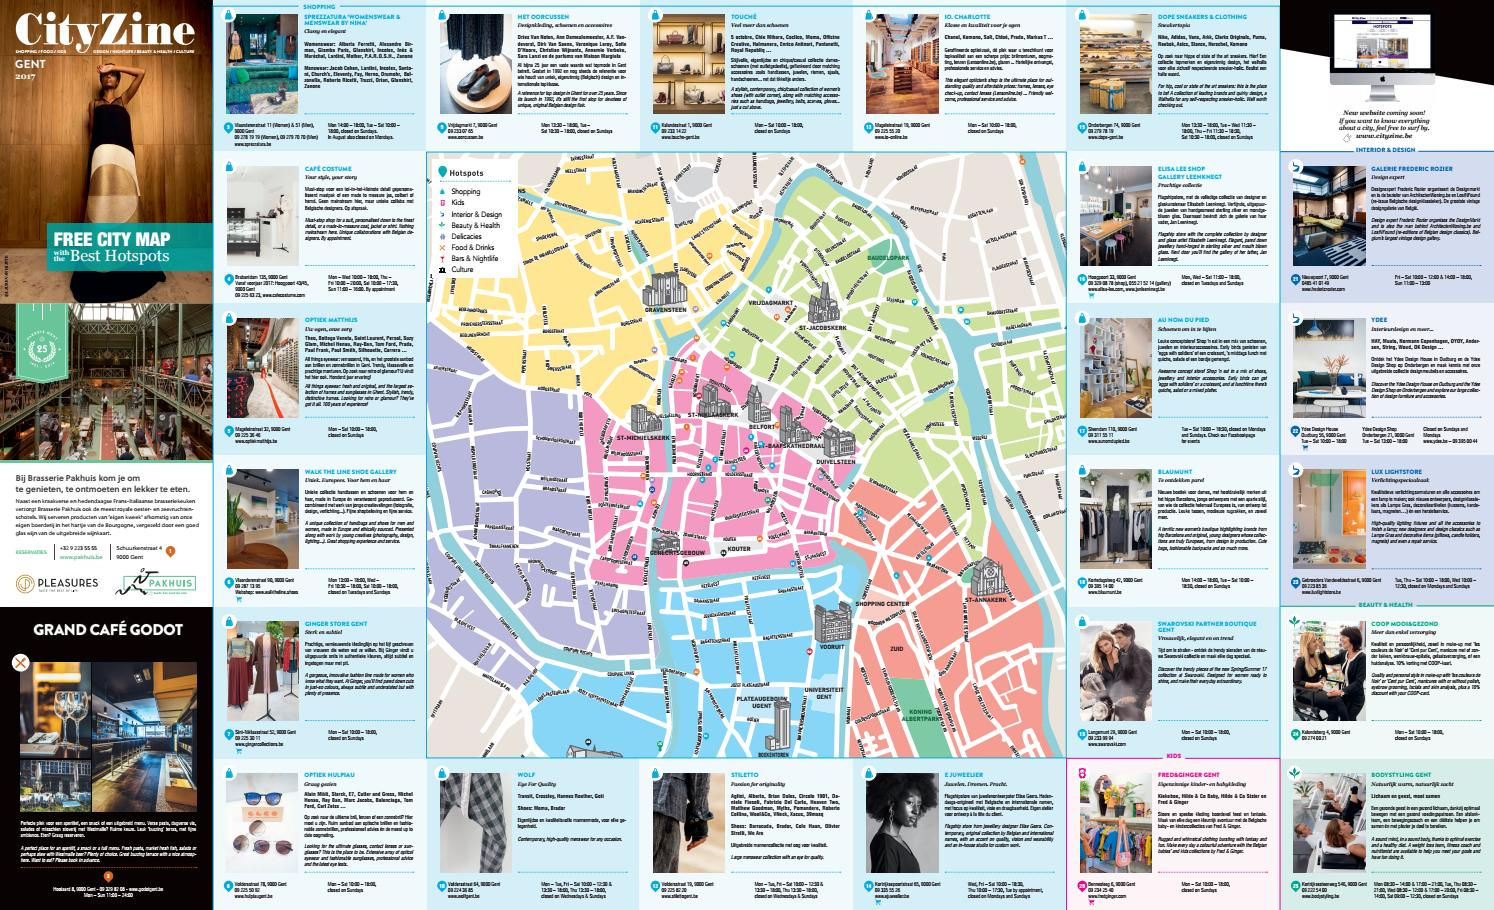 Design Verlichting Gent Steendam Gent City Map 2017 By Cityzine Issuu